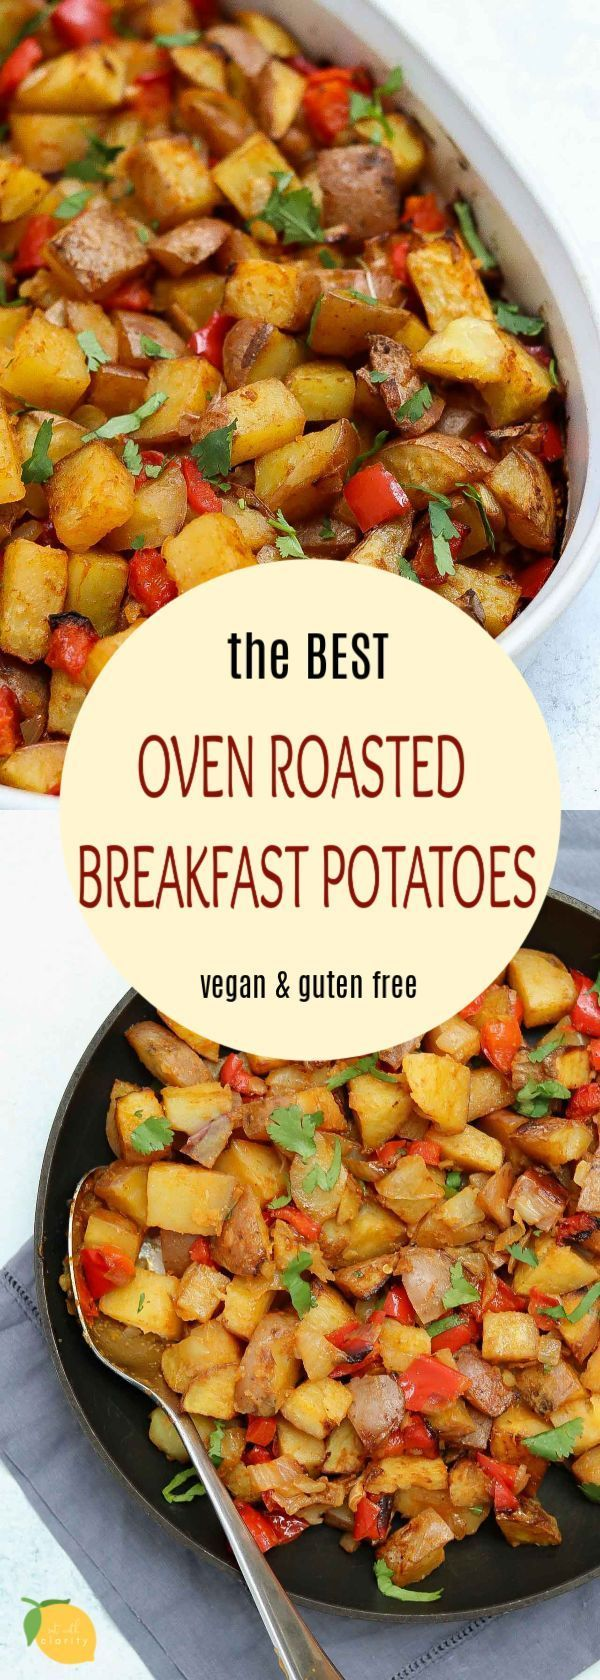 Photo of The Best Oven Roasted Breakfast Potatoes